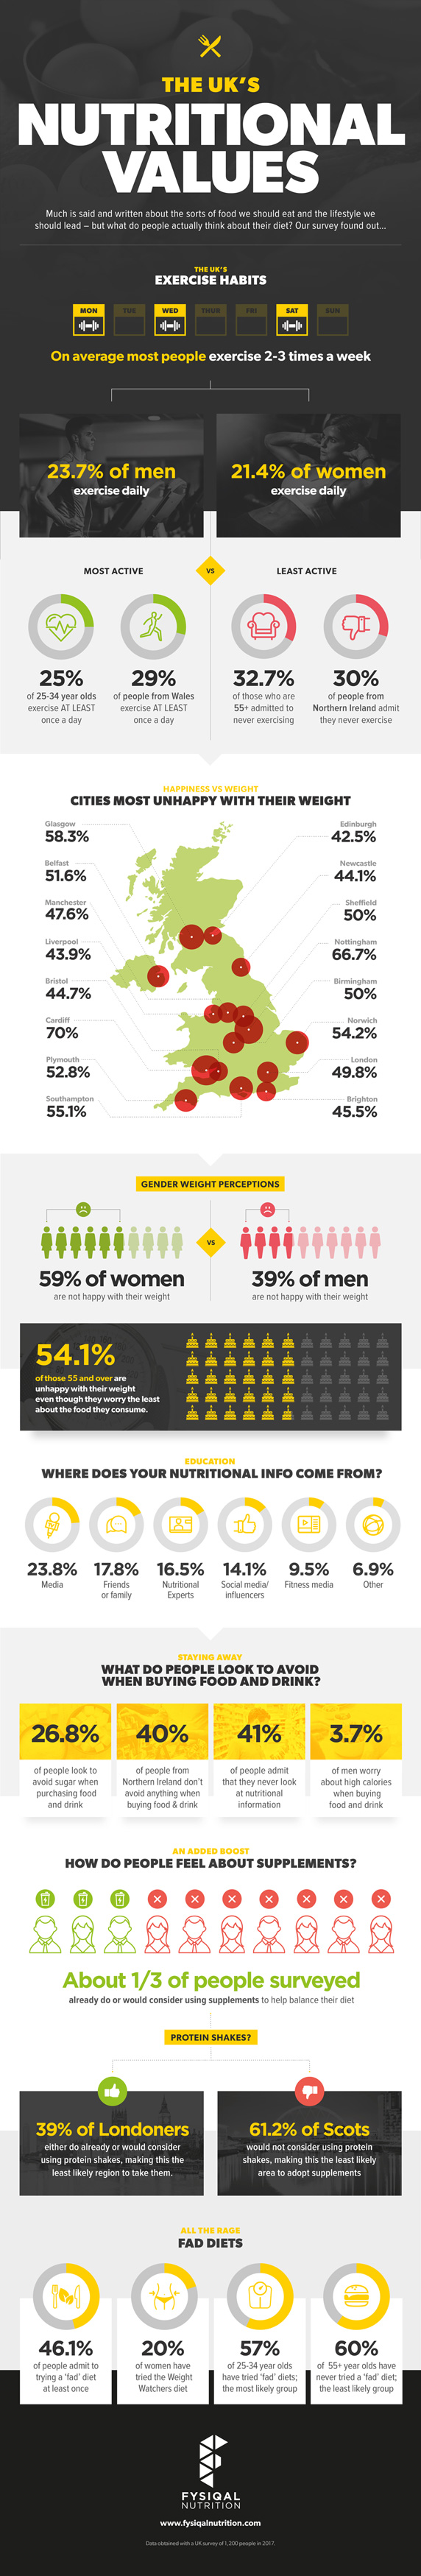 The UK's Nutritional Values - Infographic